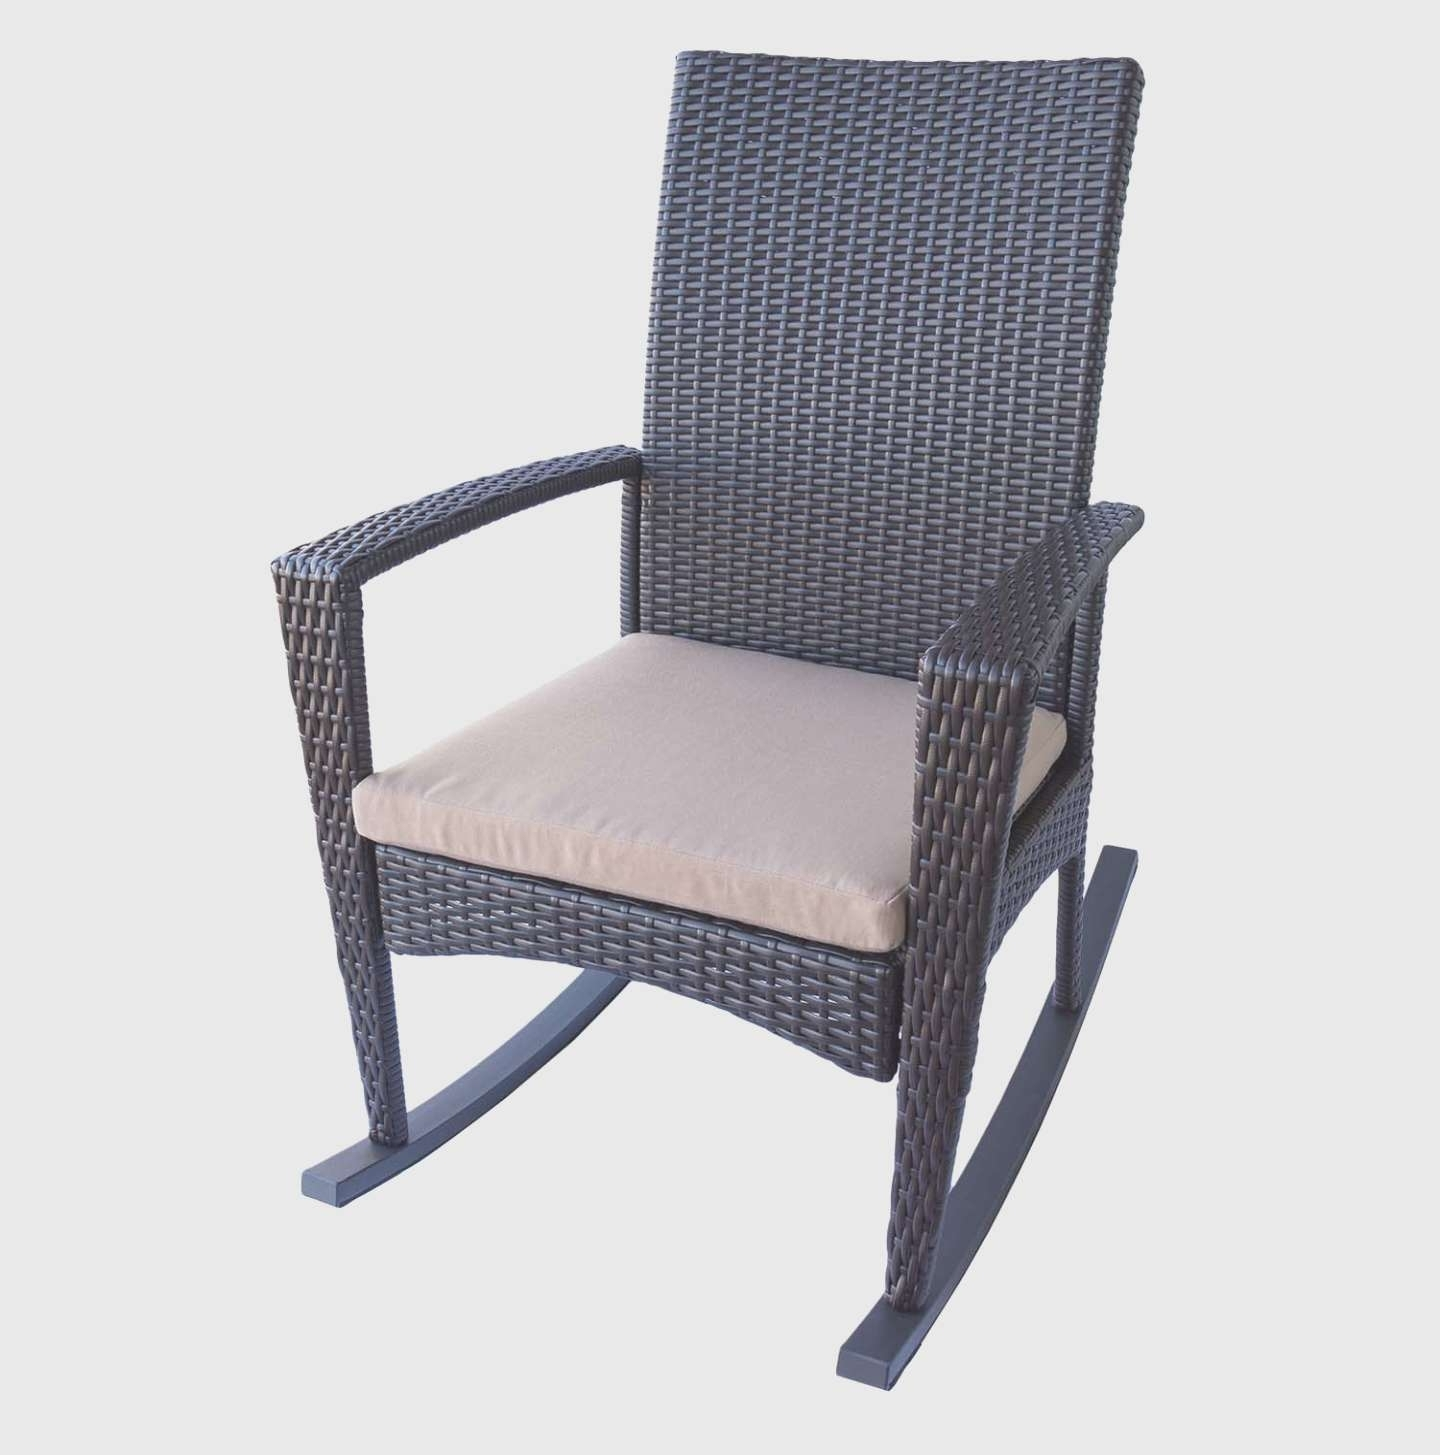 Trendy Chairs At Target – Home Ideas Inside Rocking Chairs At Target (View 18 of 20)